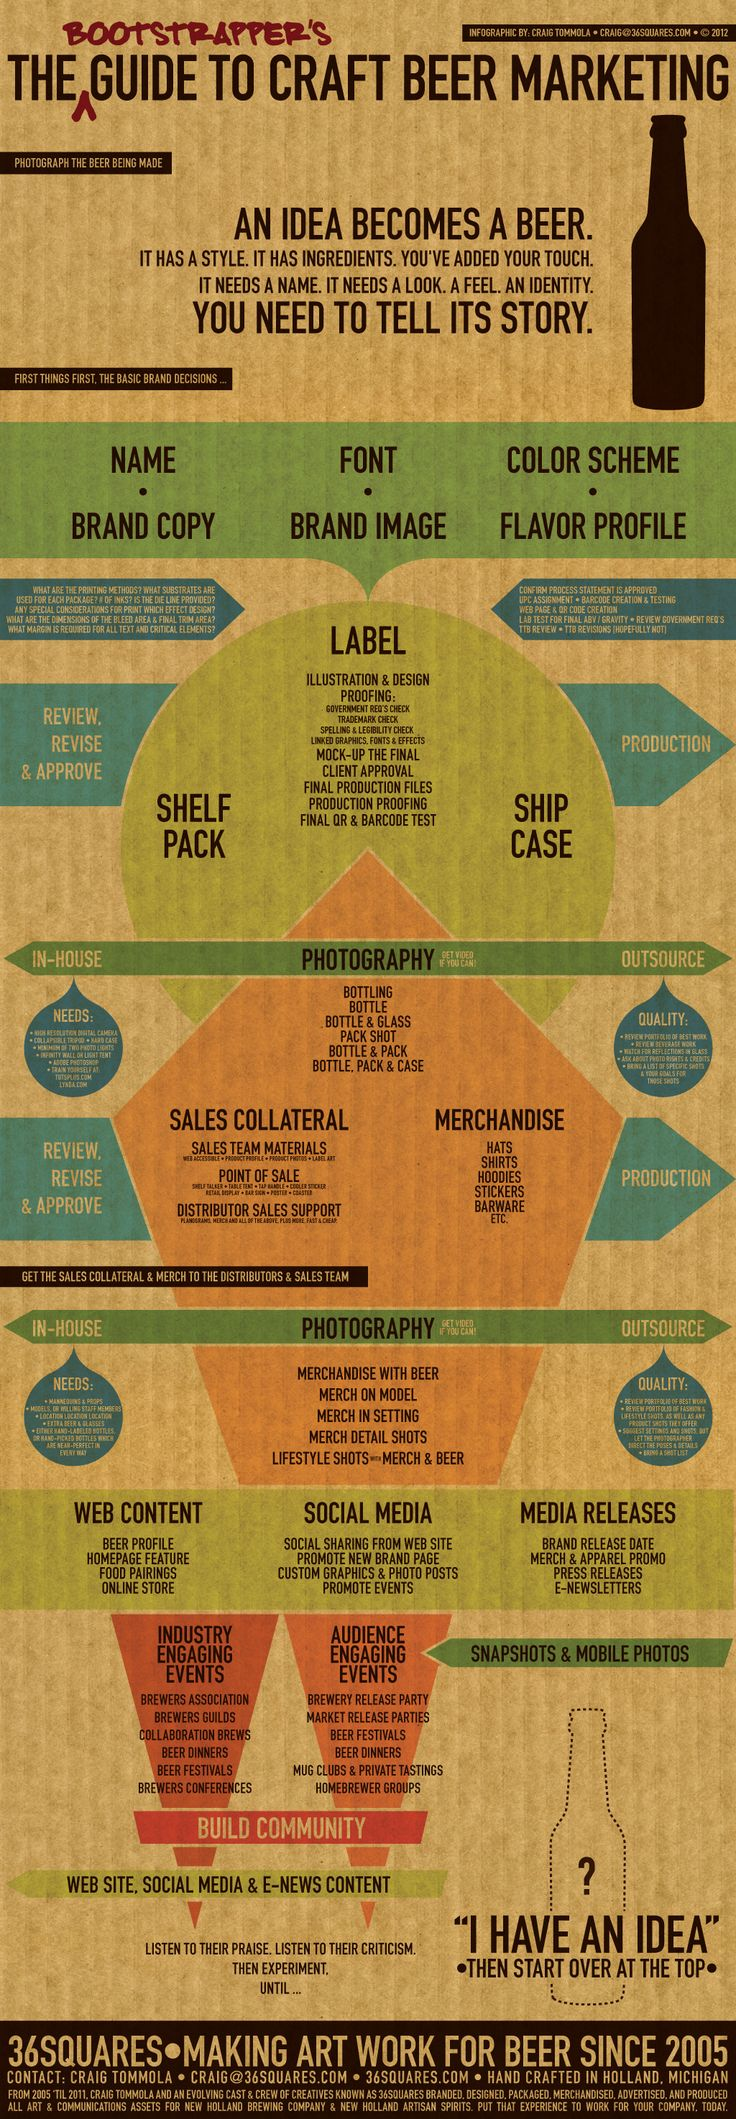 An infographic I created to demonstrate my understanding of and experience in Craft Beer Marketing.